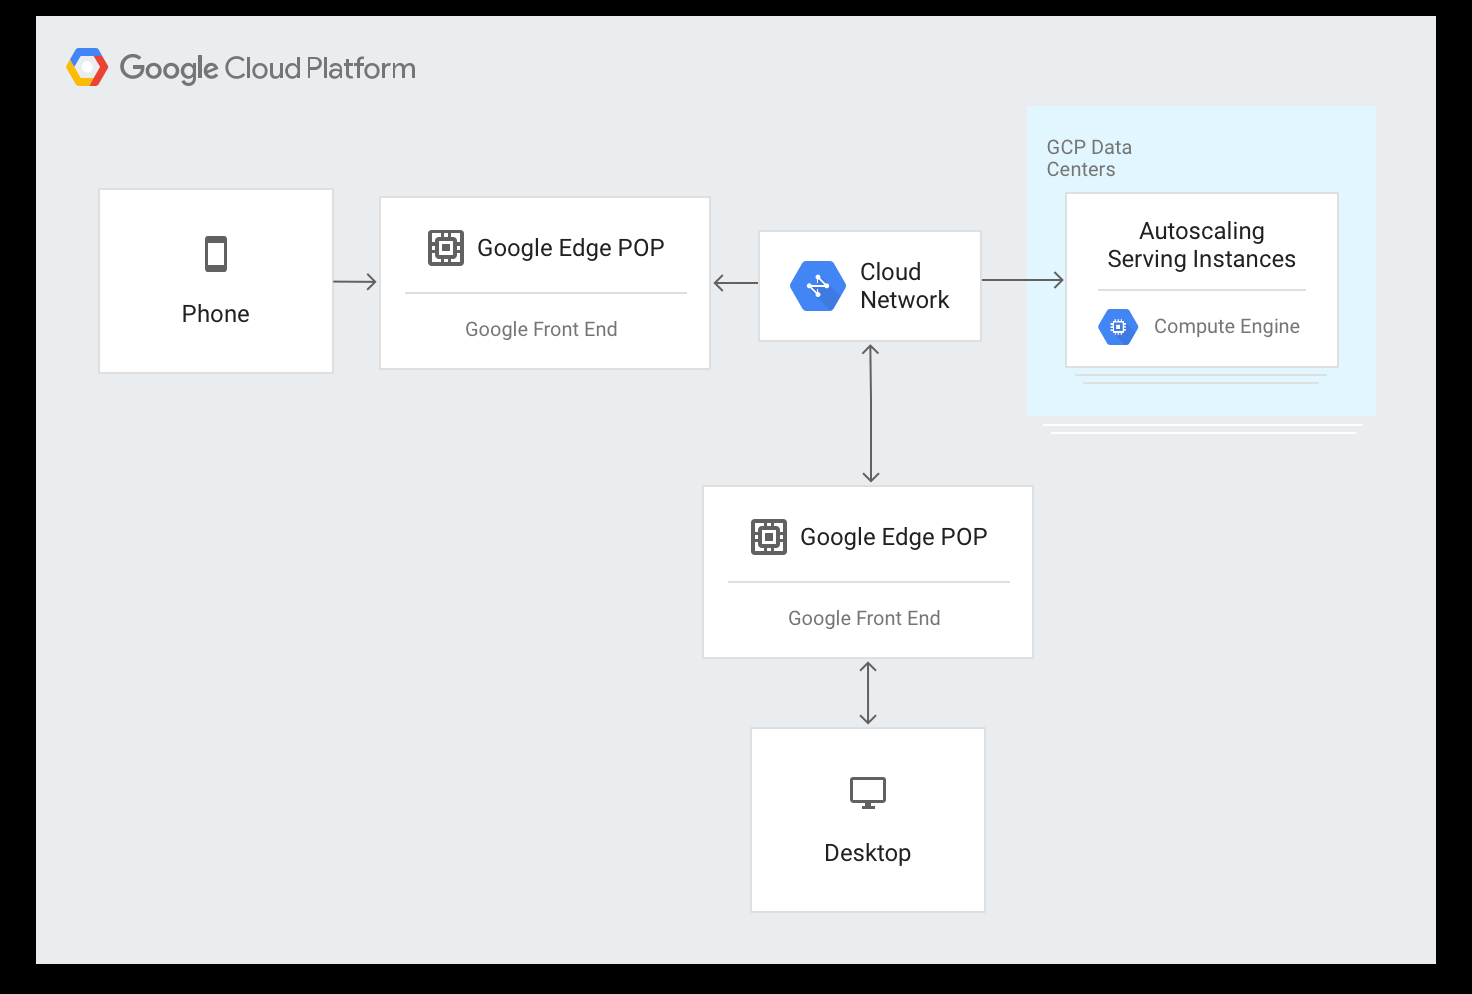 Diagram showing how requests go through the GFE before going to Google data centers